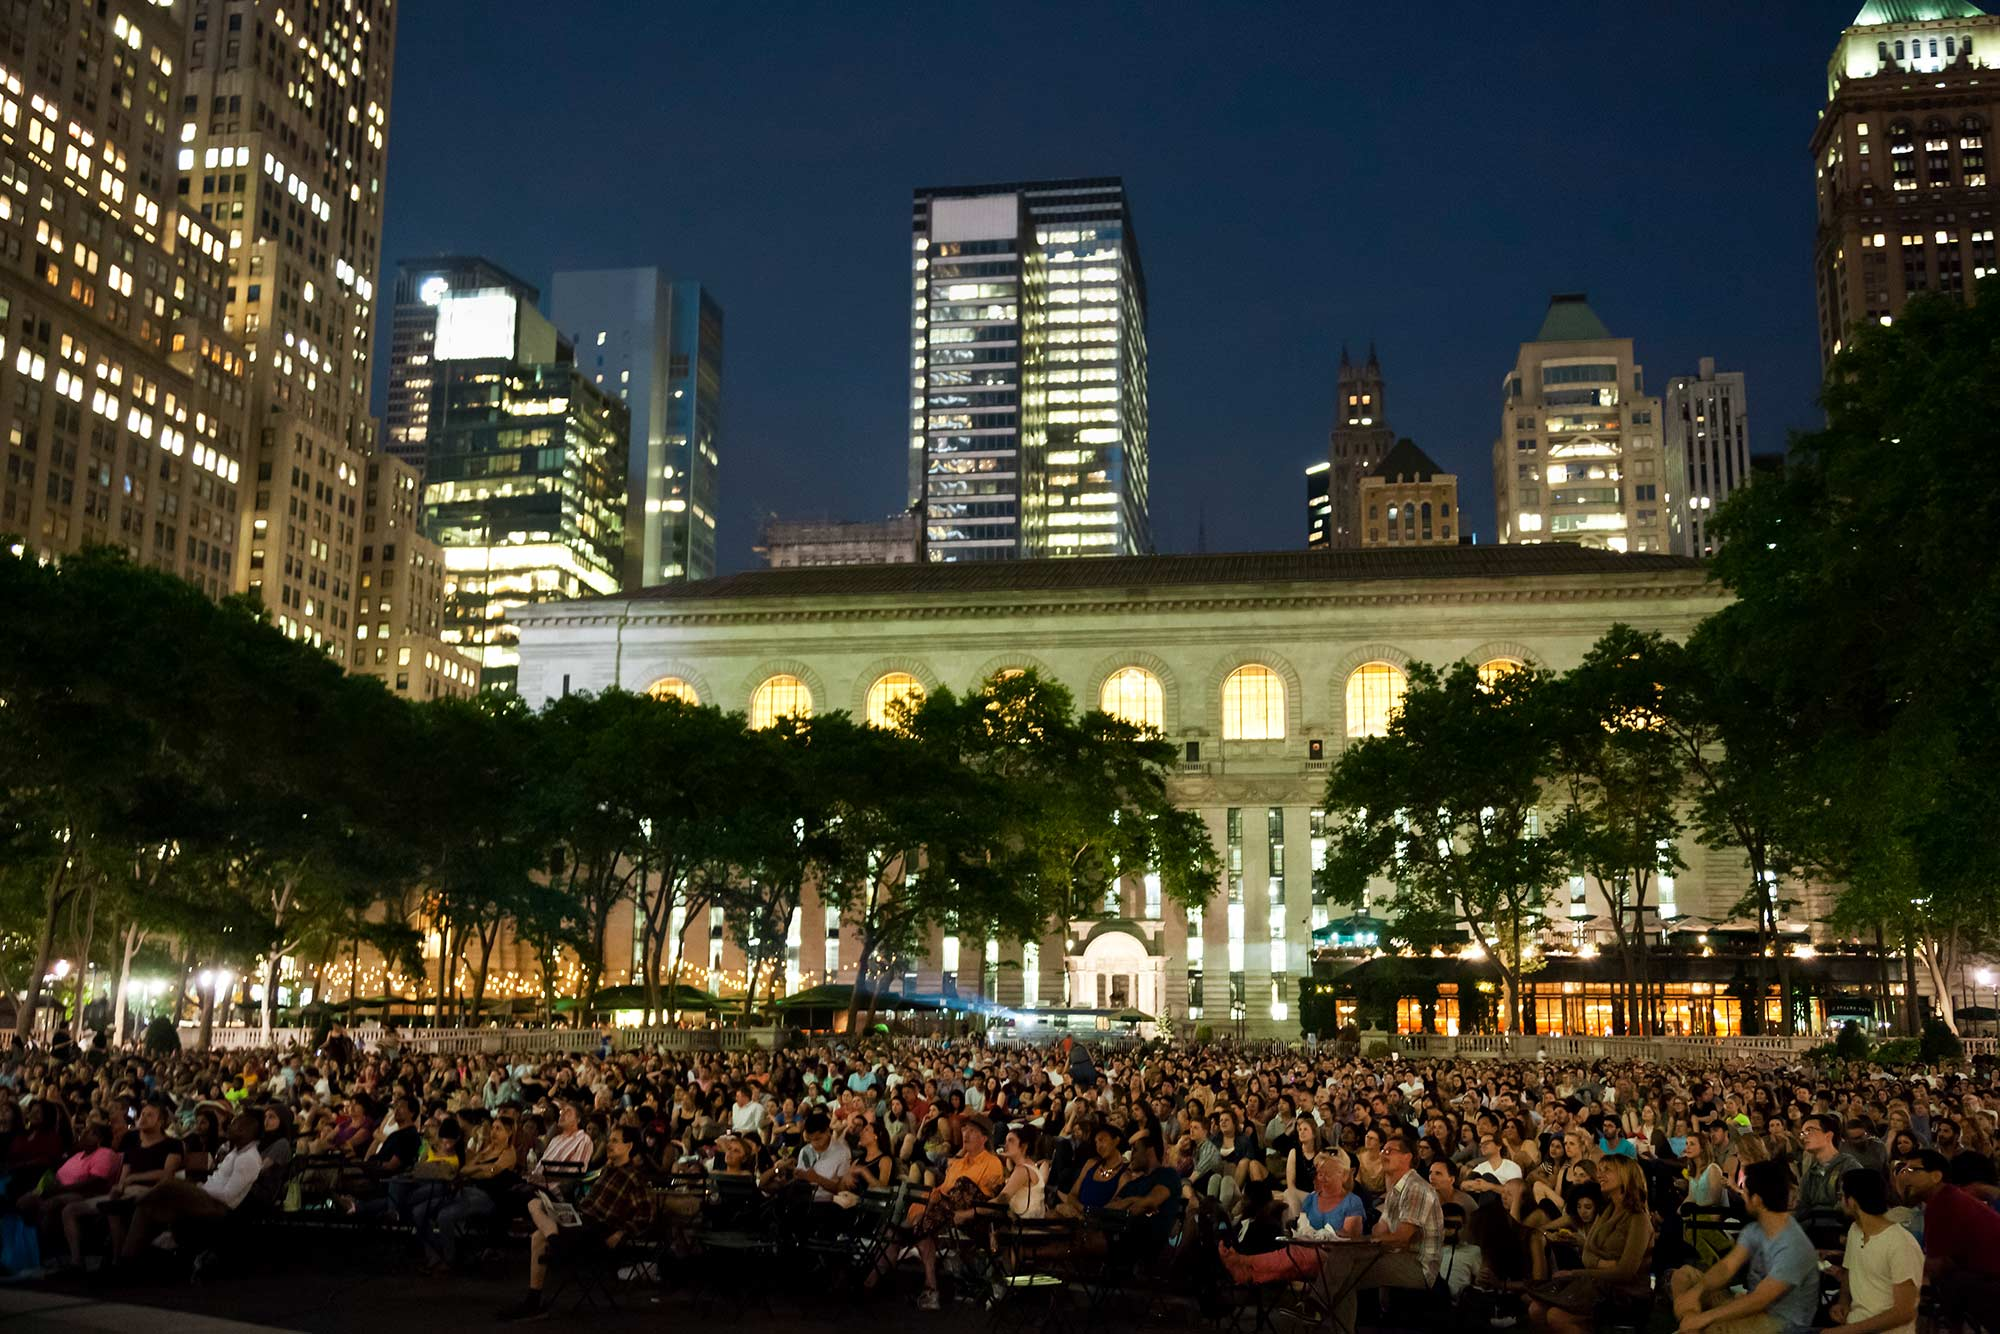 crowd sitting outdoors at nighttime at Bryant Park